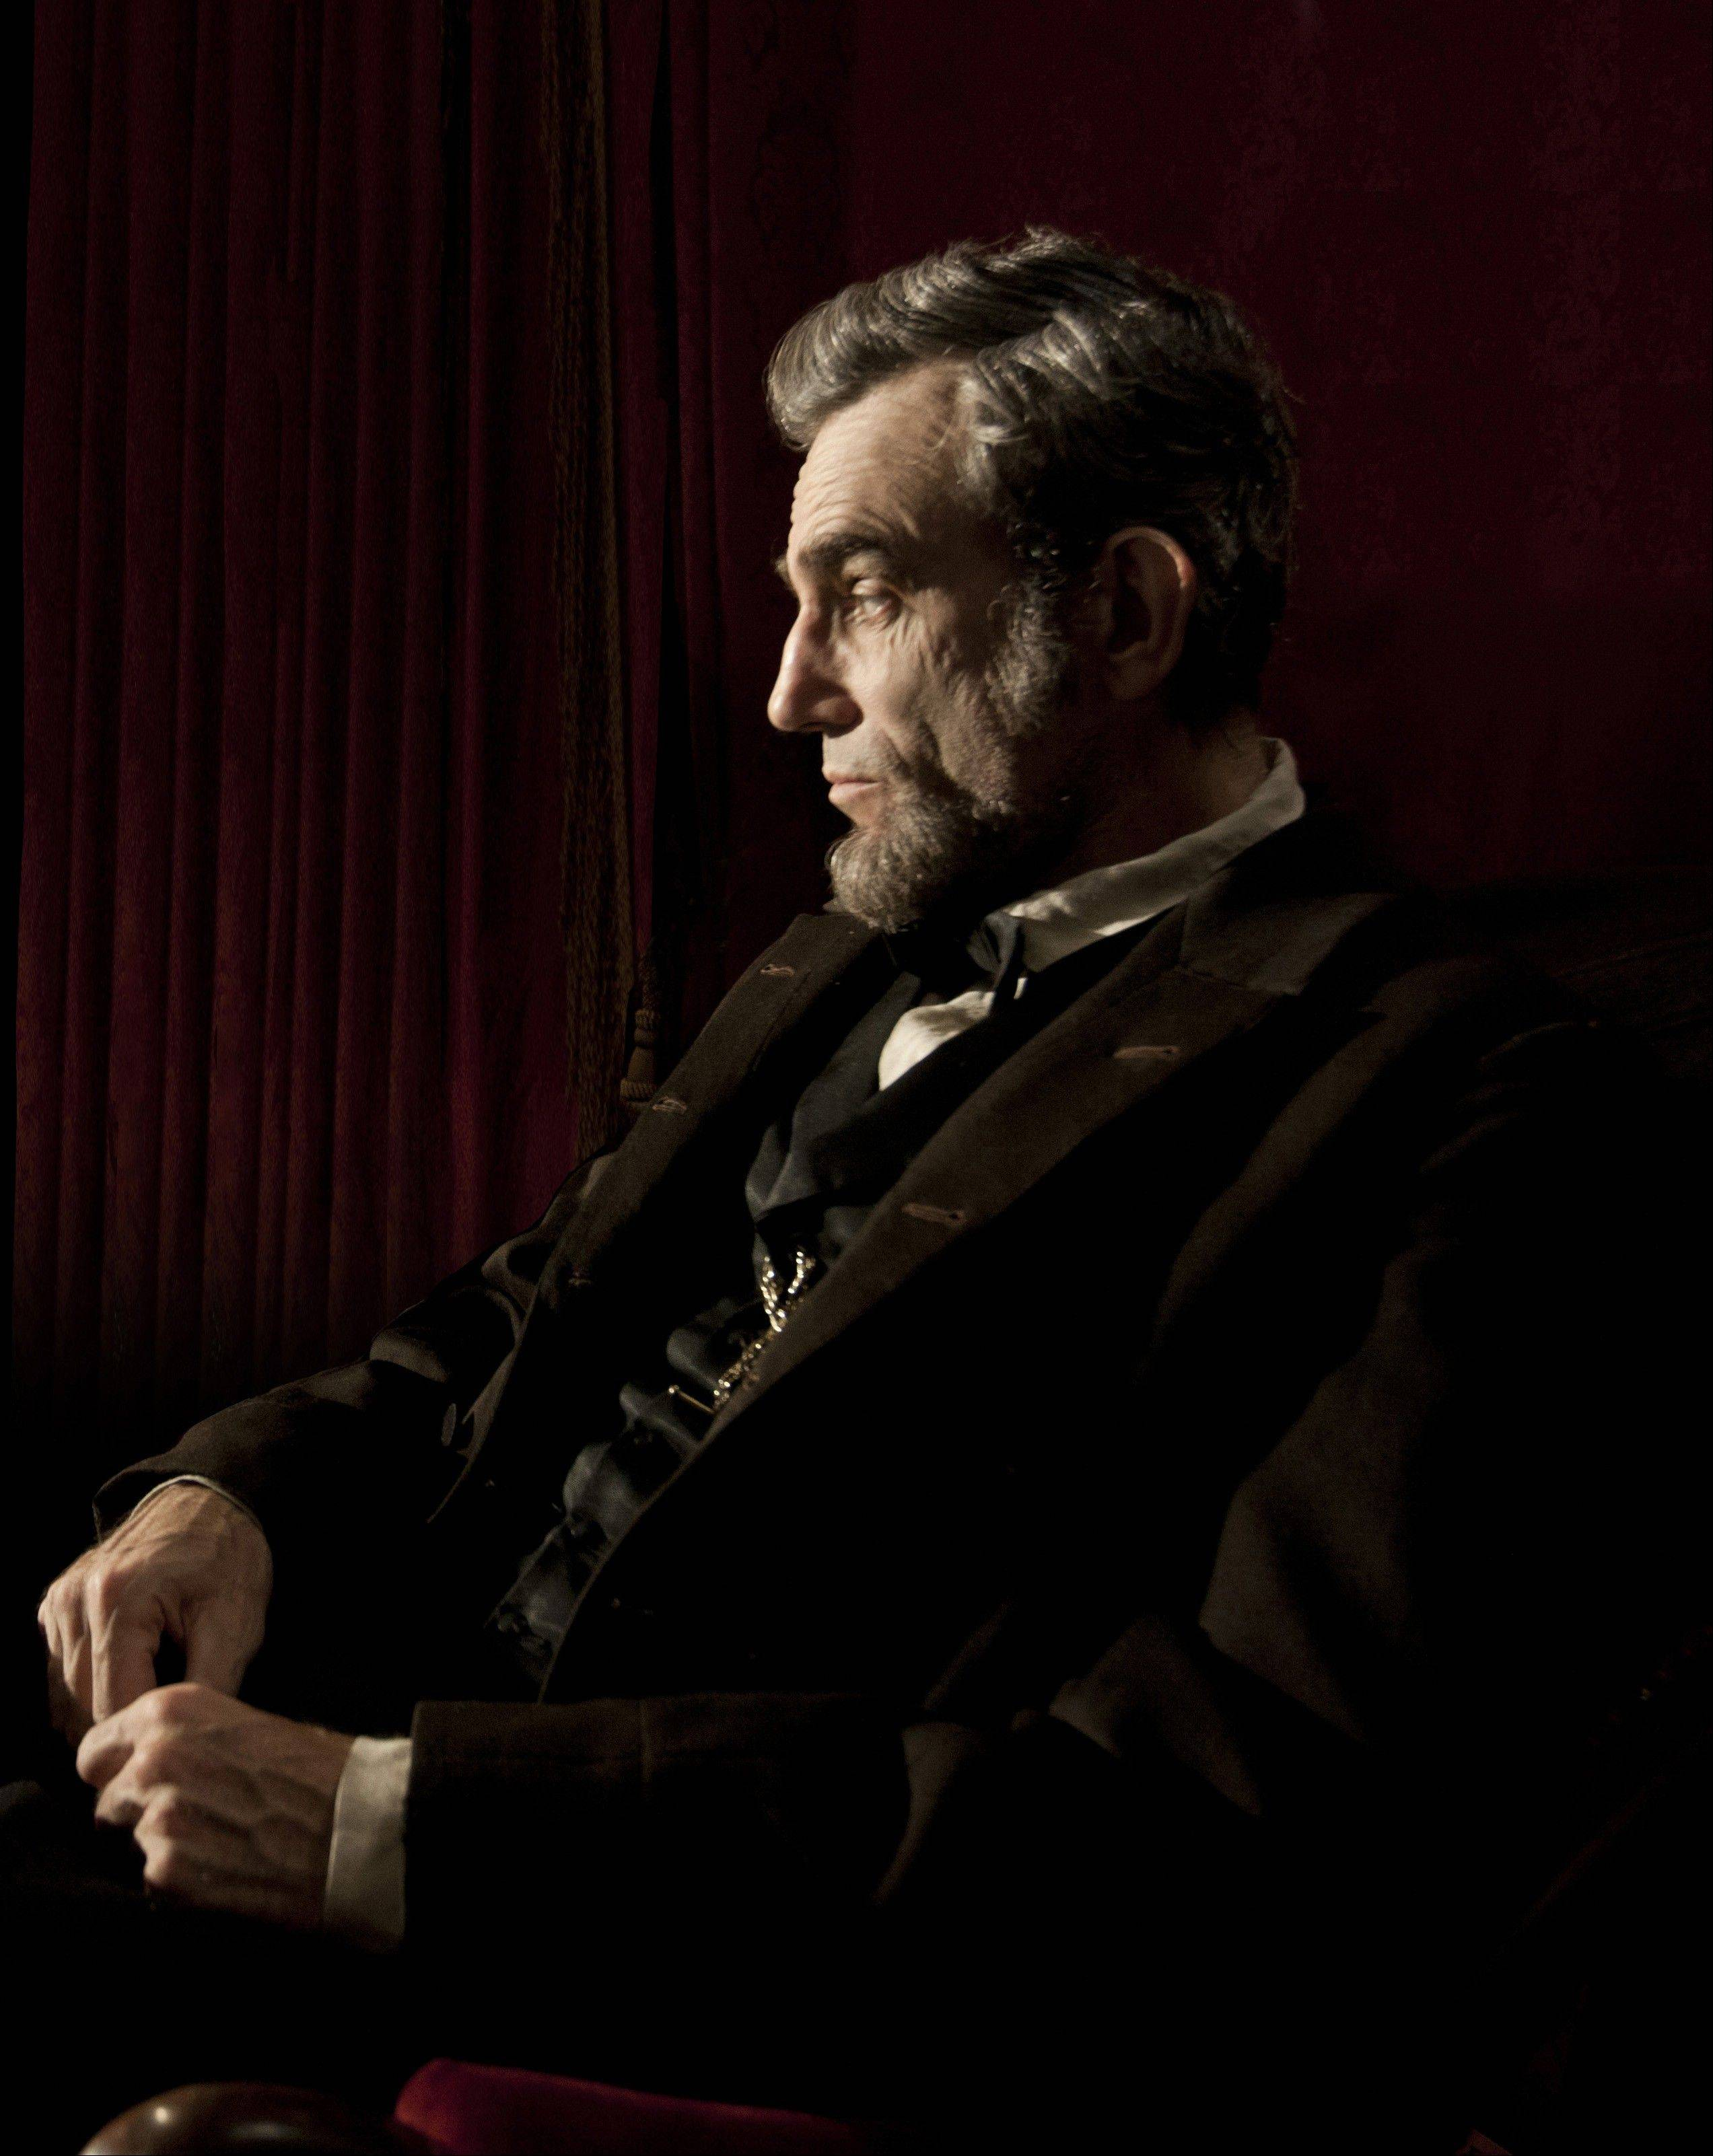 """Lincoln,"" with Daniel Day-Lewis, leads the race for the British Academy Film Awards, with 10 nominations including best picture and best actor."